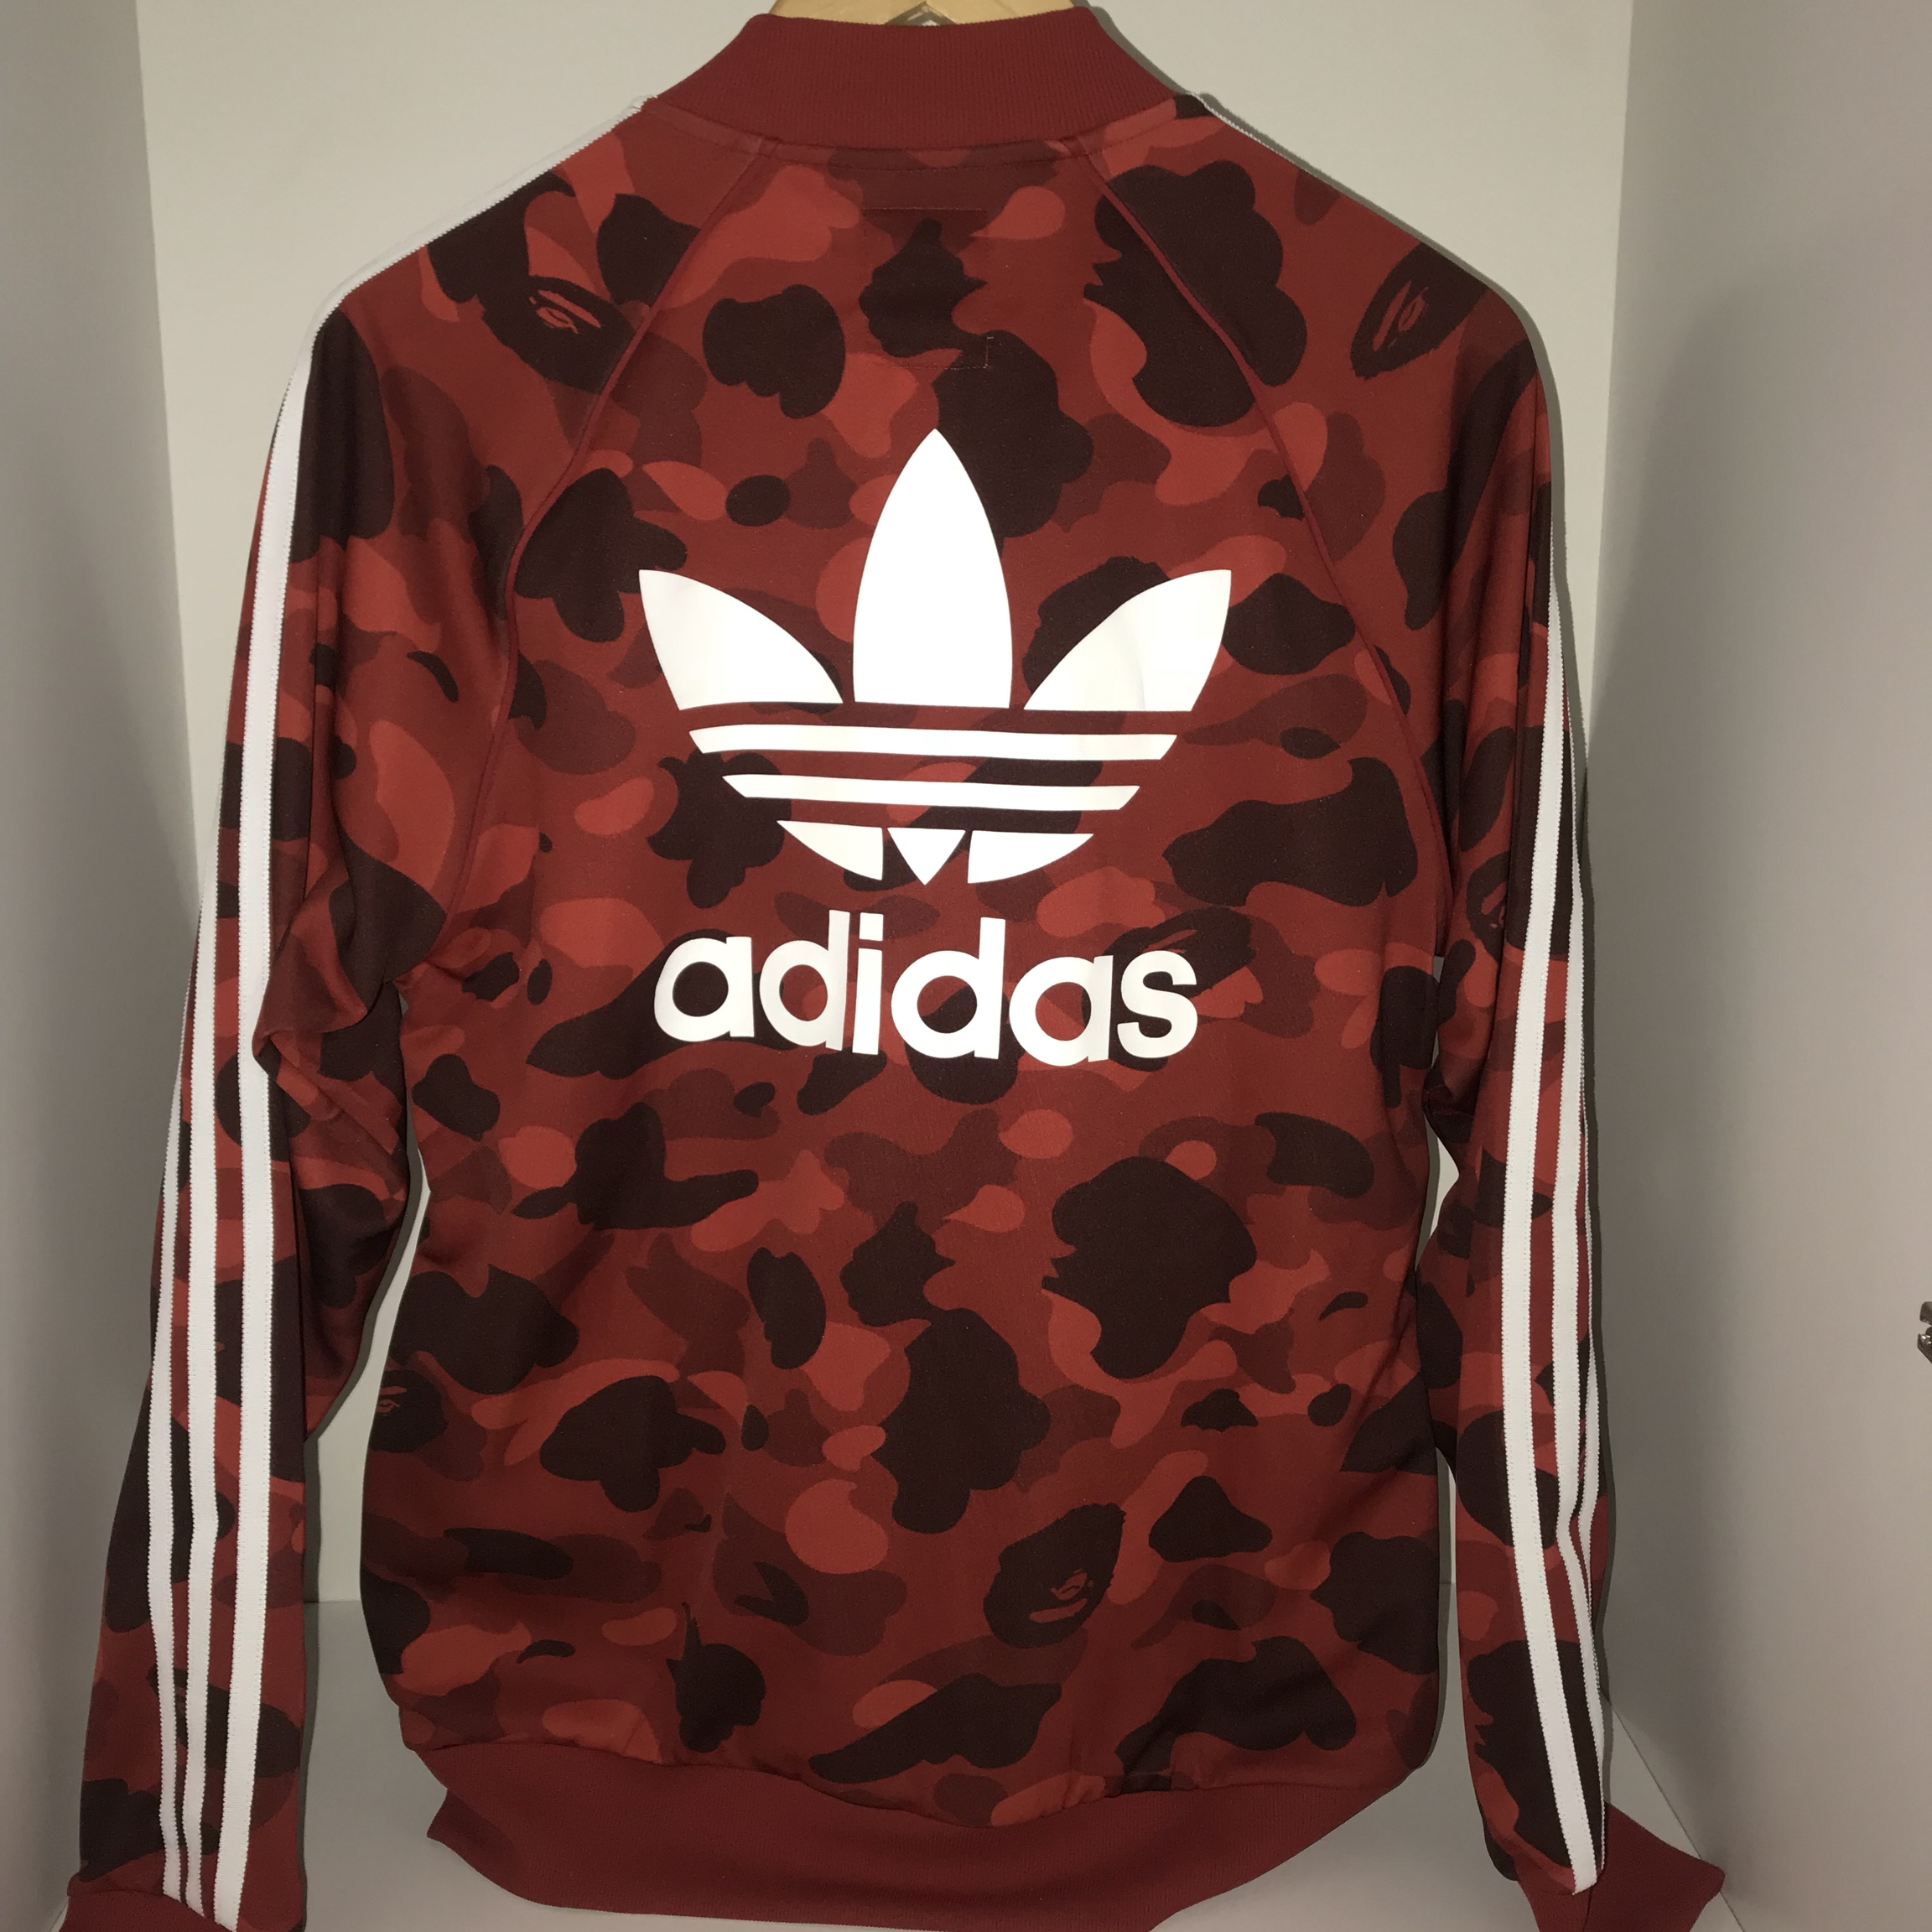 BAPE x adidas World Cup 2018 Winning Collection Zip Up Track Jacket Red